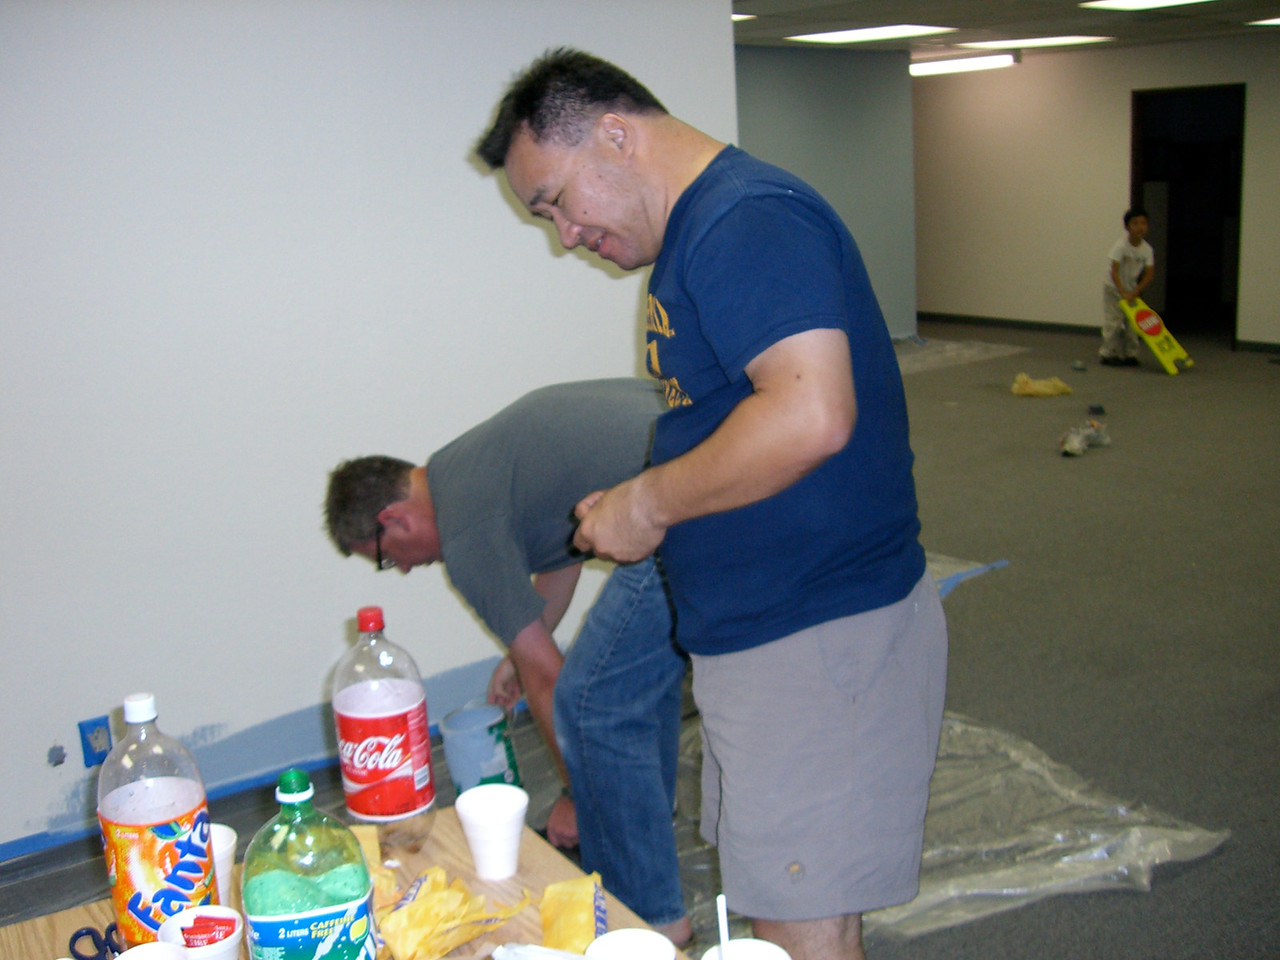 People painting the fellowship hall & The Coke calls out to Pastor Pall